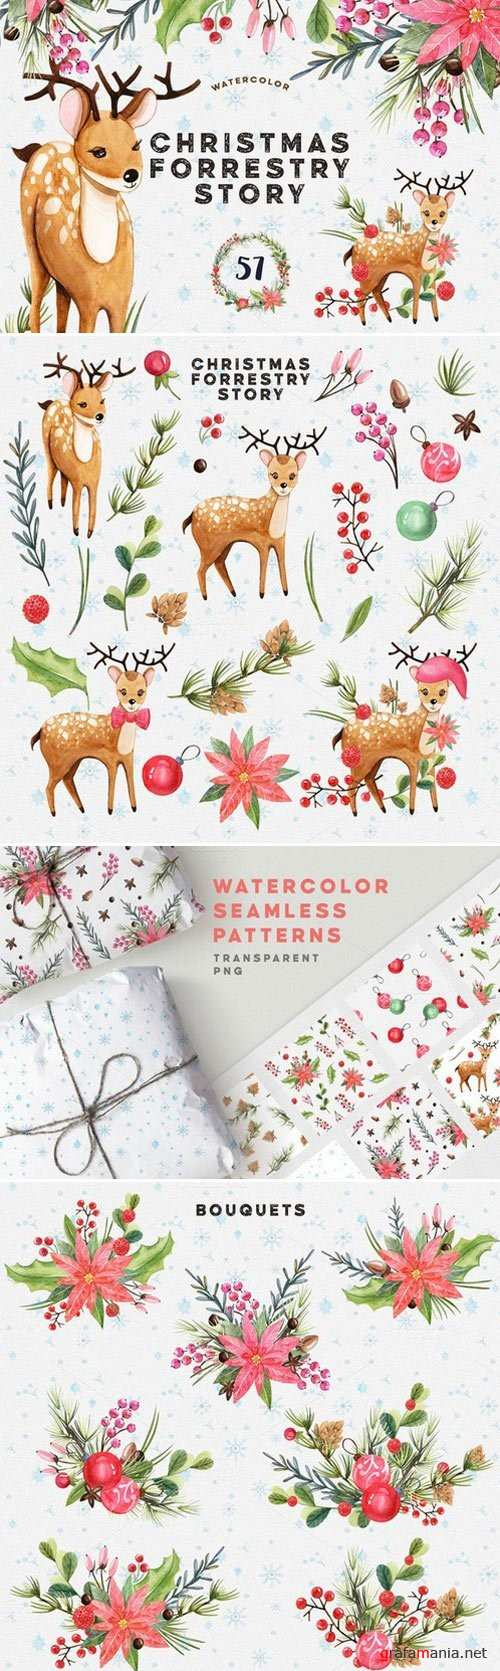 Watercolor Christmas Forrestry Story 1058854